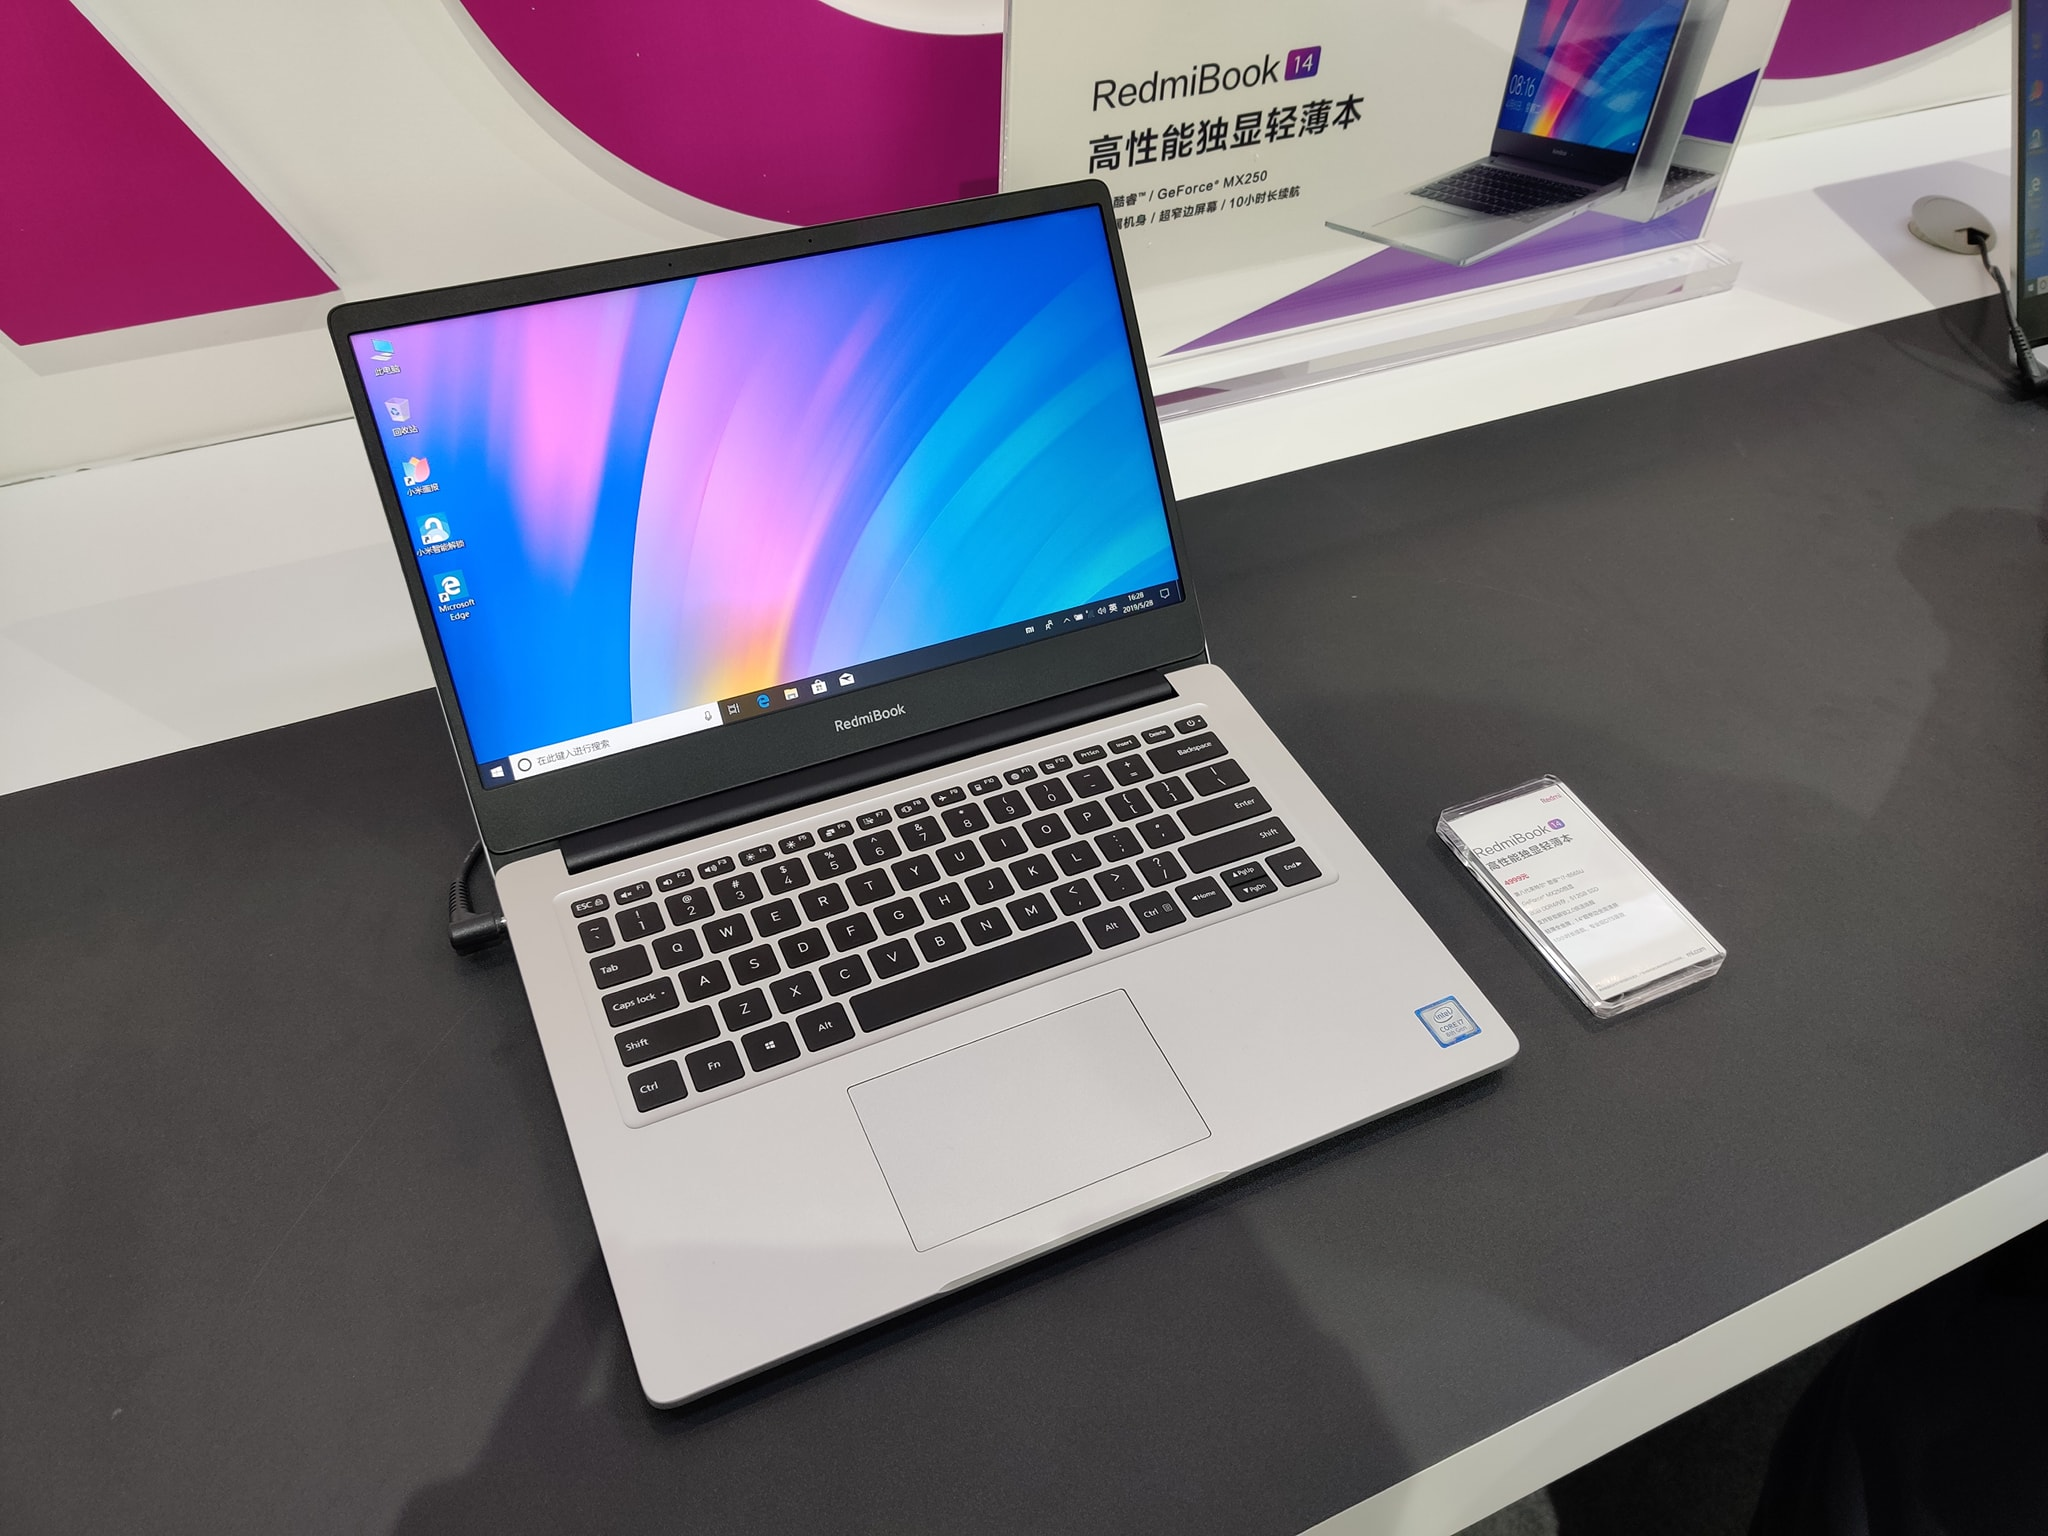 Sforum - Latest technology information page 61813679_2735881206483967_1288857361259167744_o Close up of Redmi's first thin, light, and light RedmiBook laptop